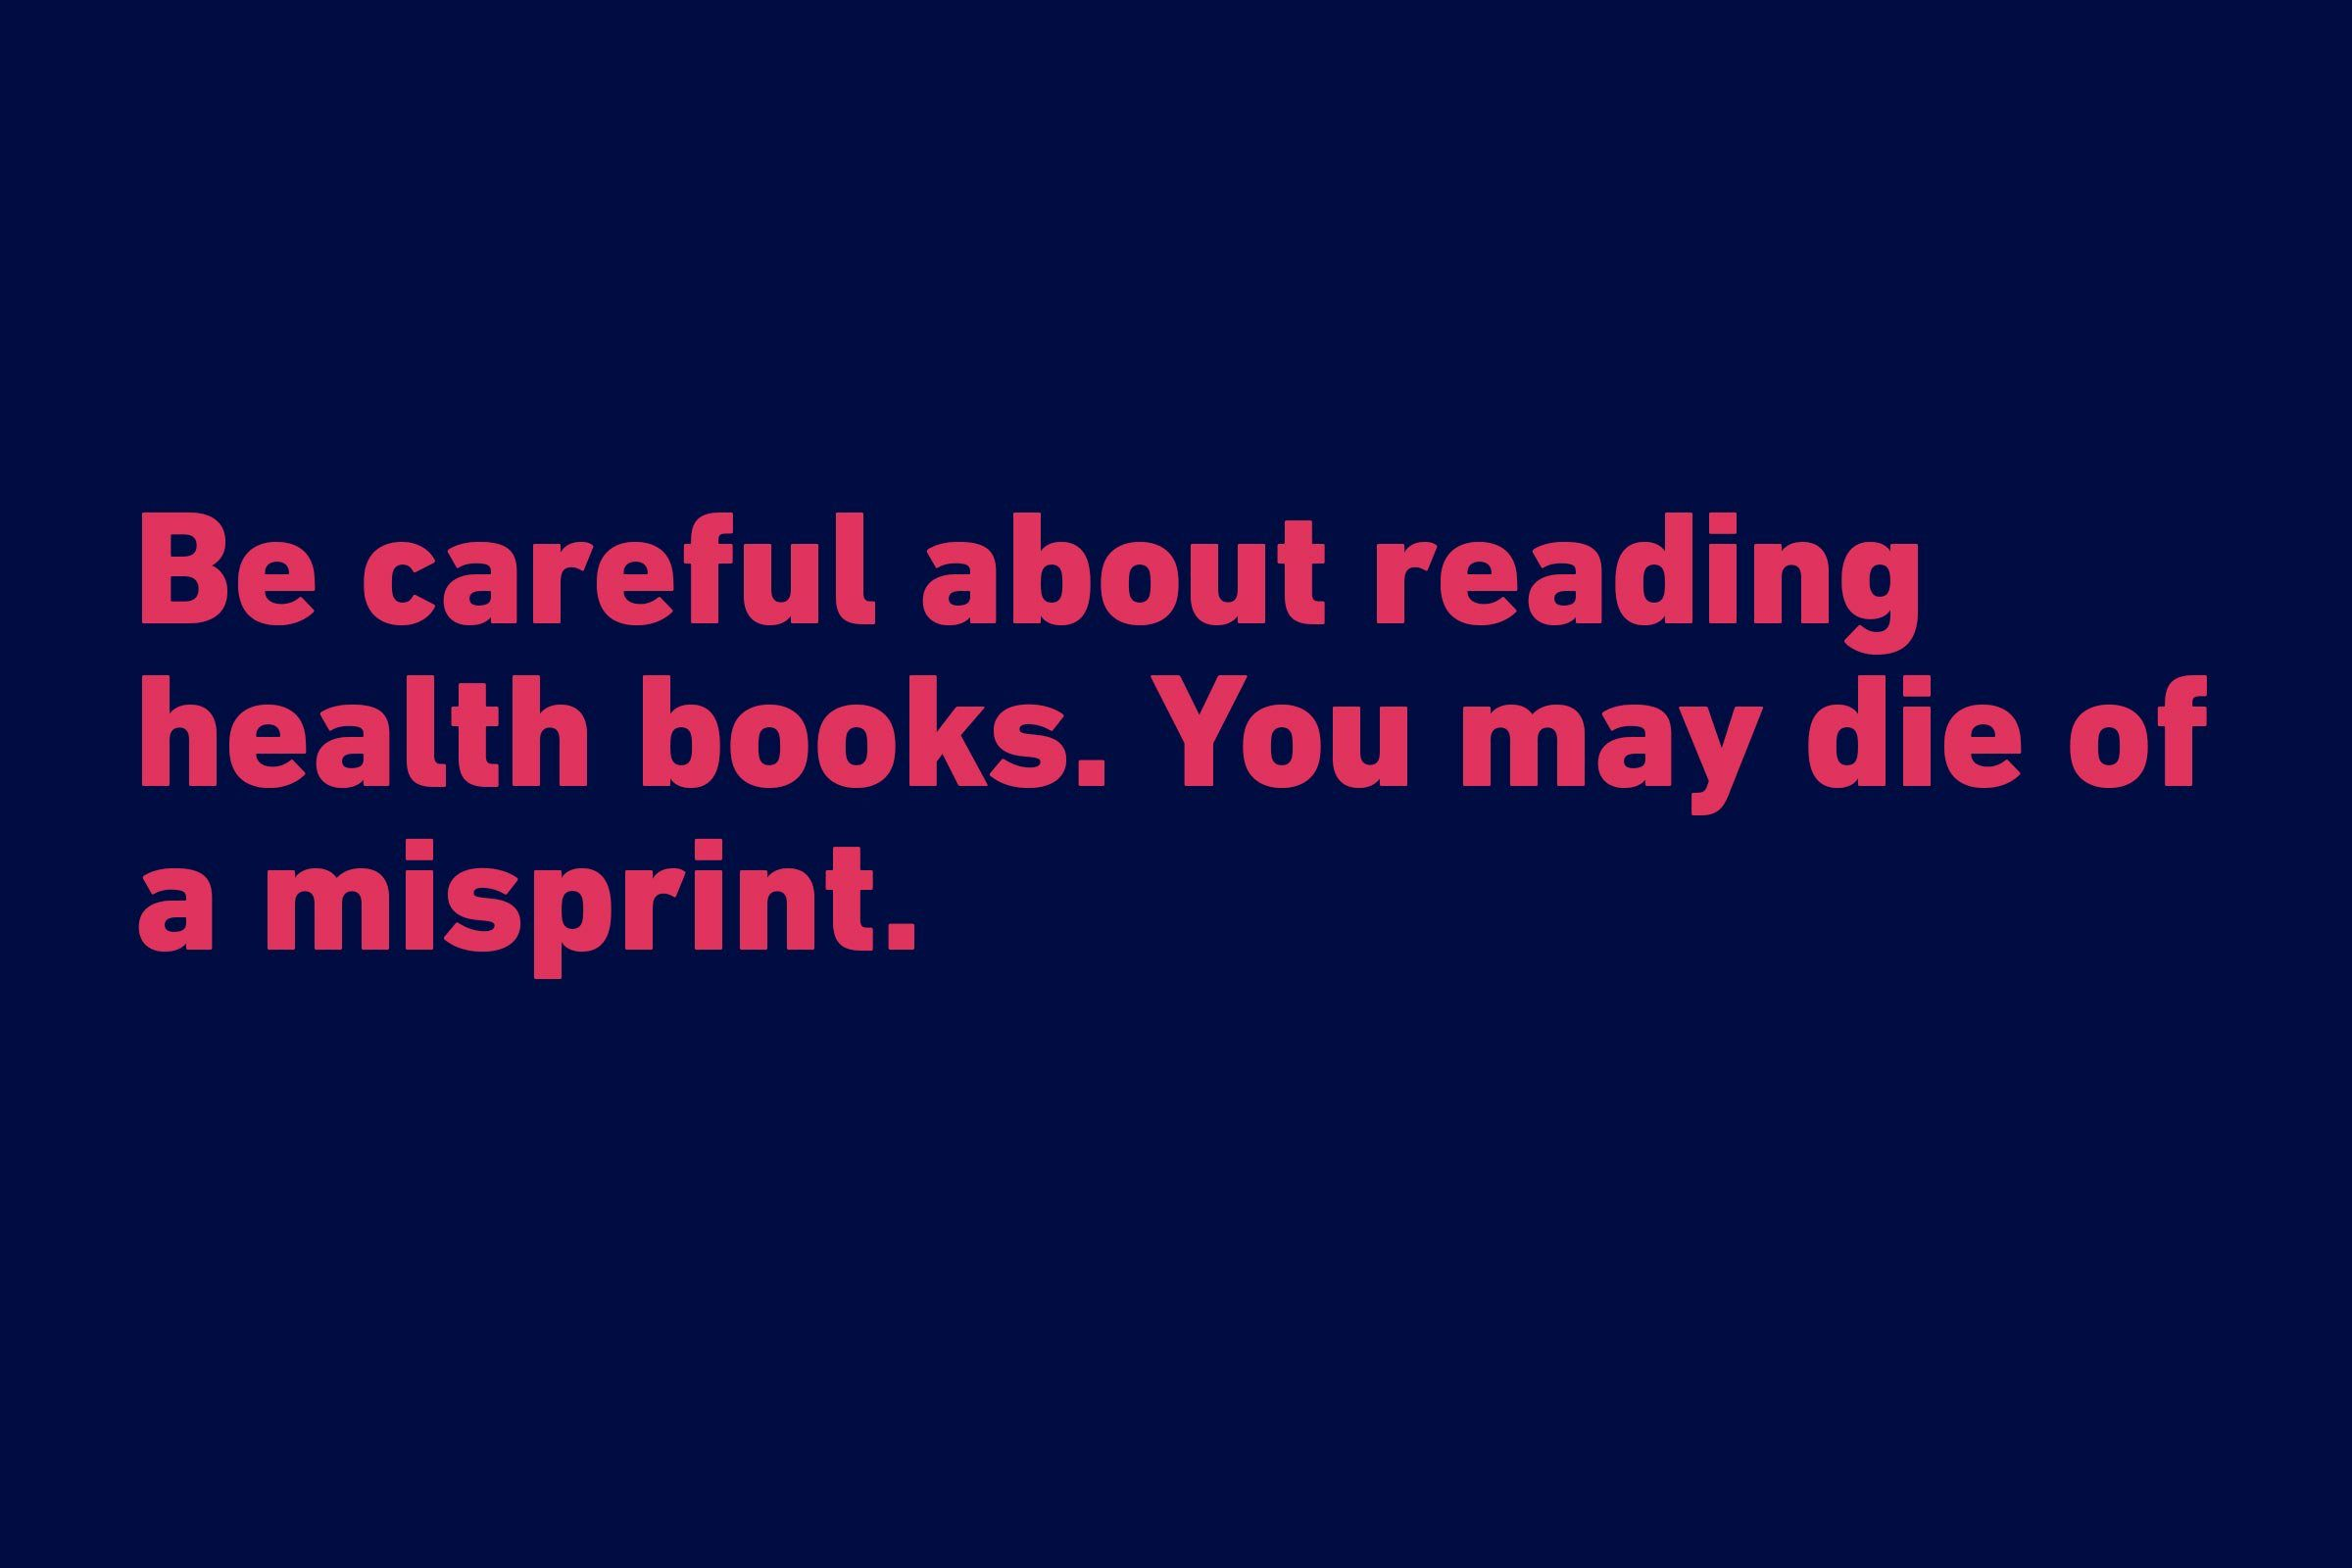 reading health books